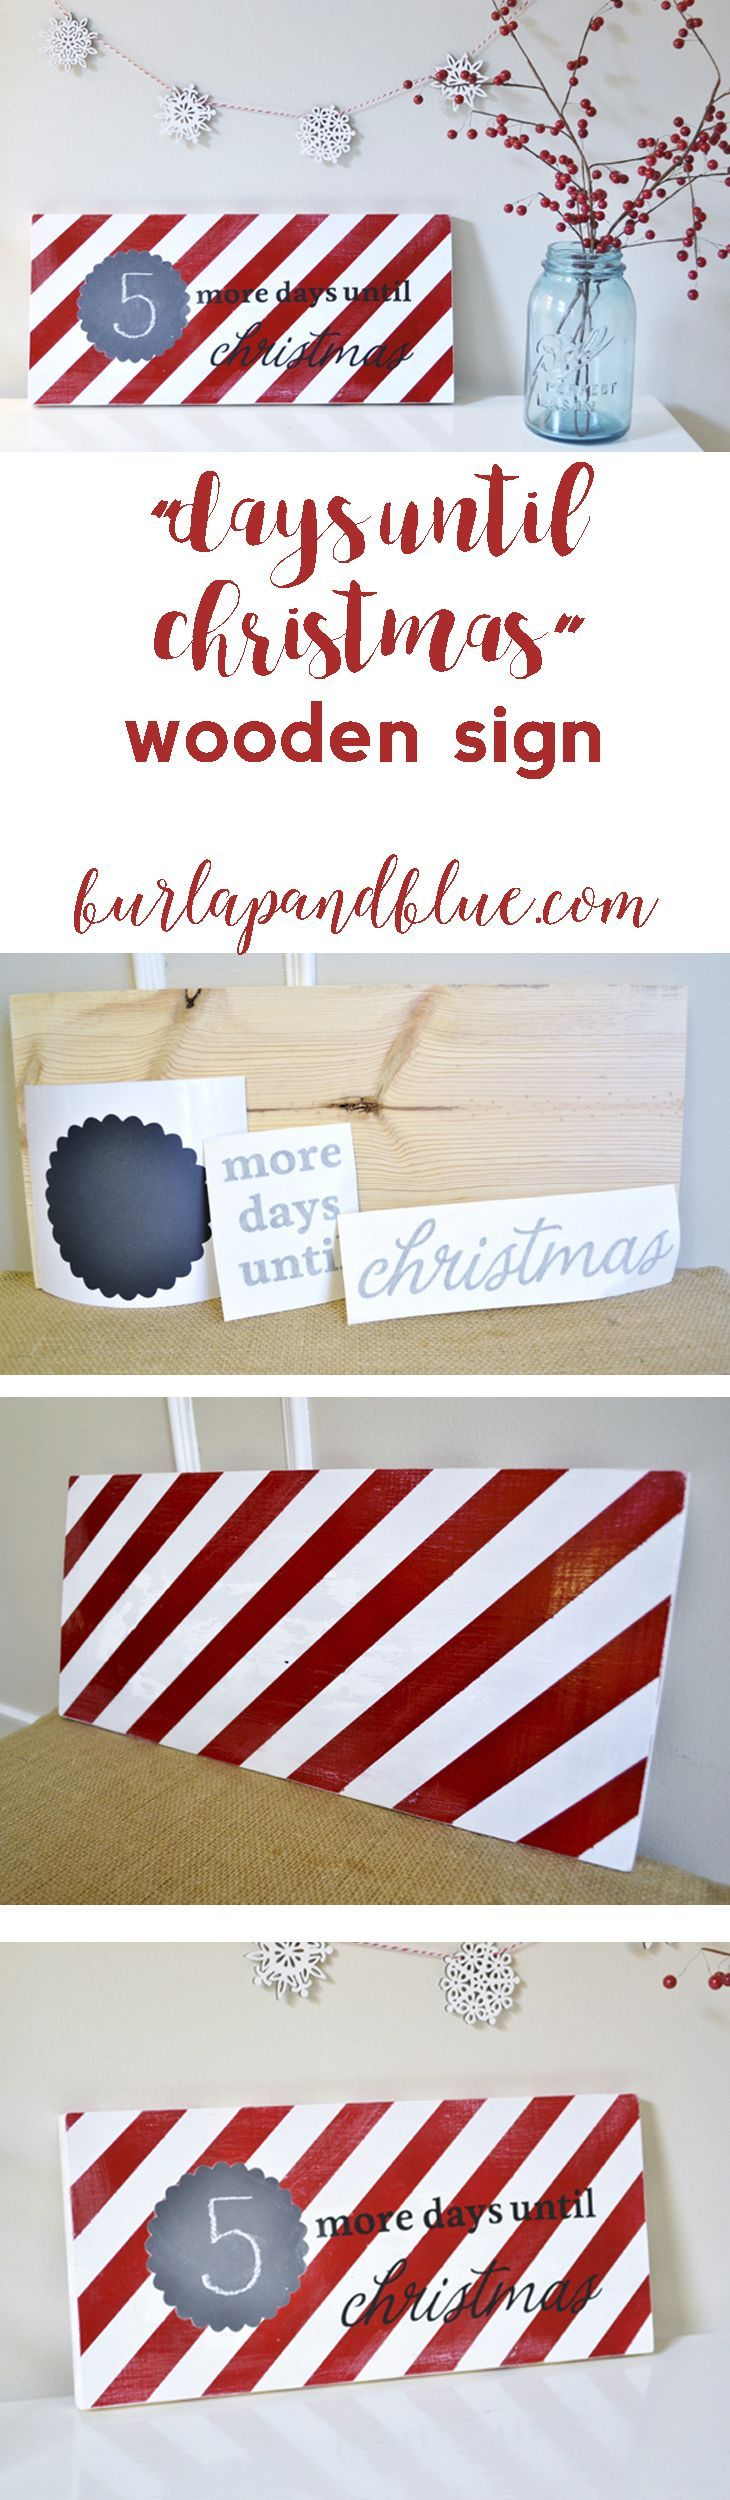 """days until christmas"" striped wooden sign...using vinyl!"